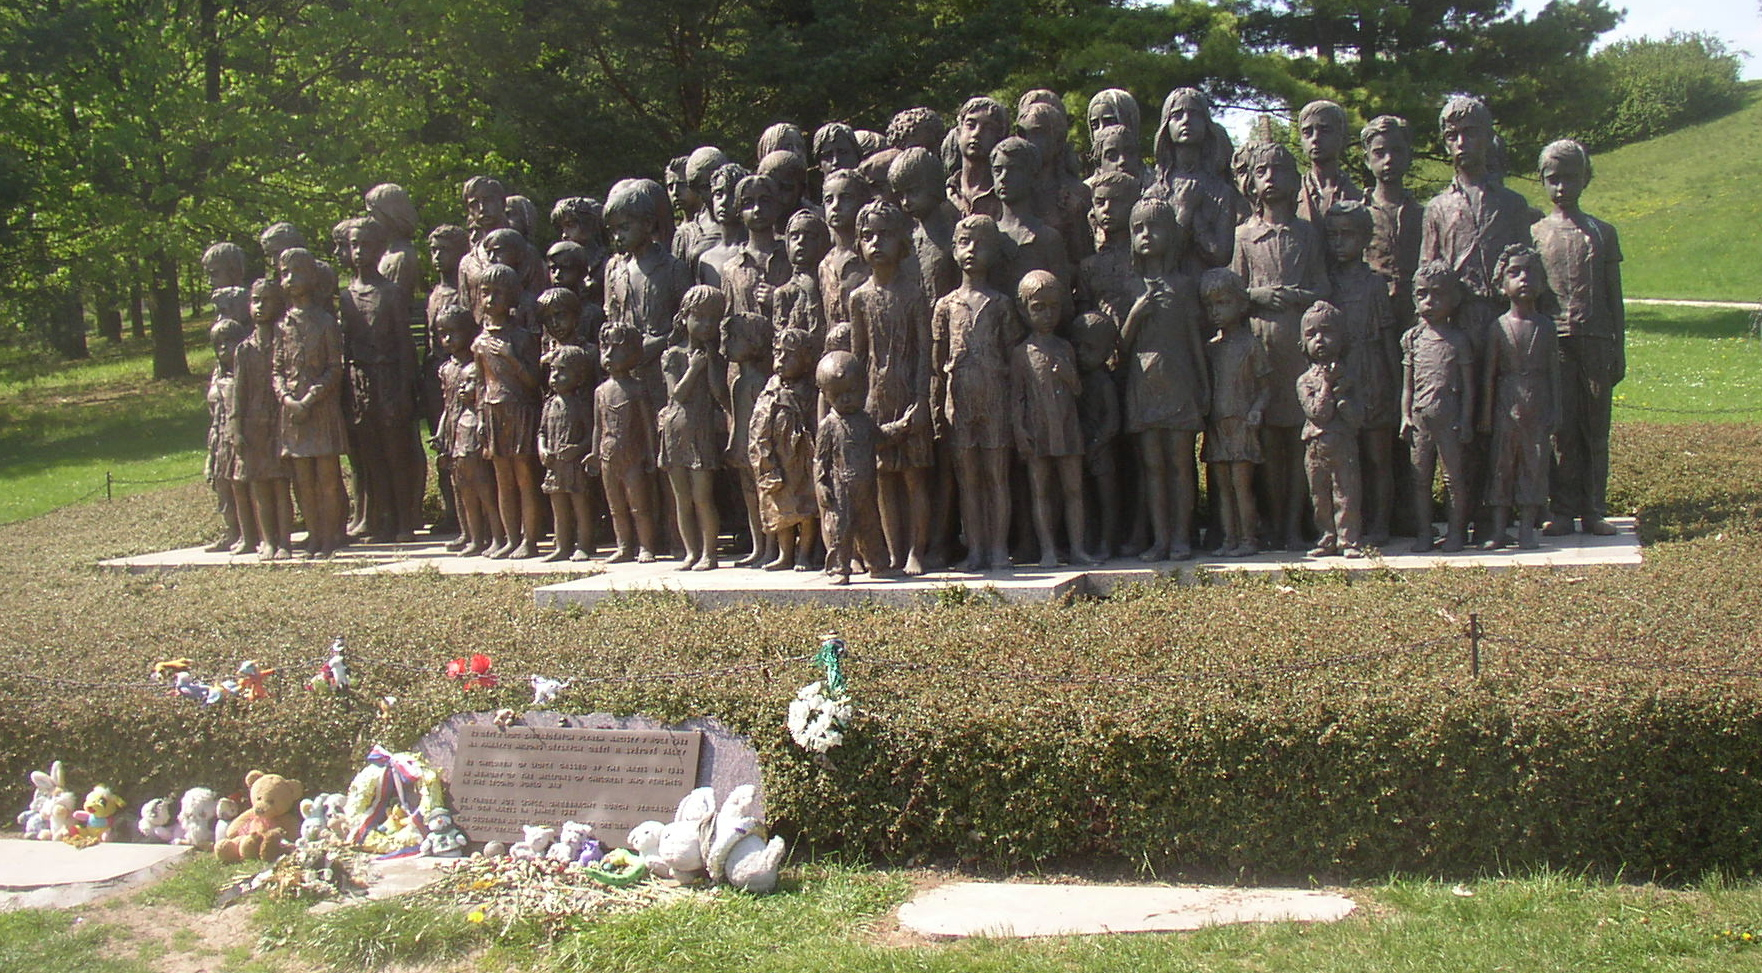 Lidice, Memorial to the children of Lidice, Miaouw Miaouw